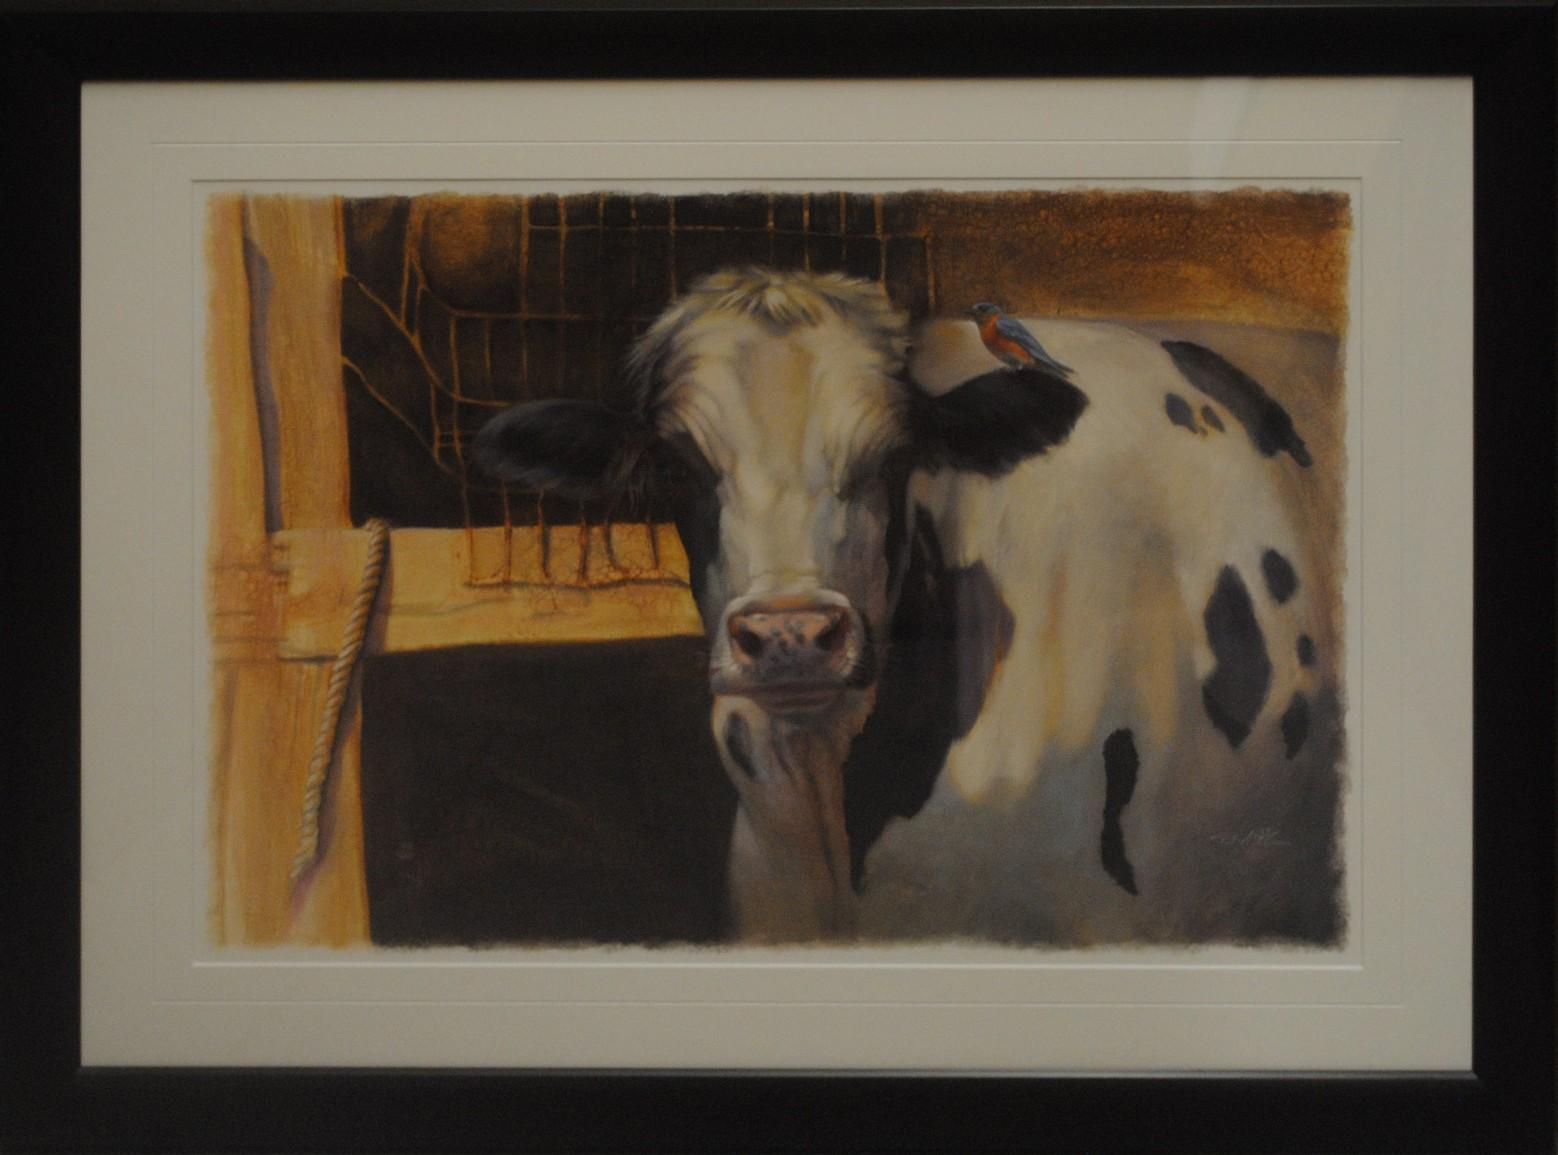 Framed Picture of a Cow